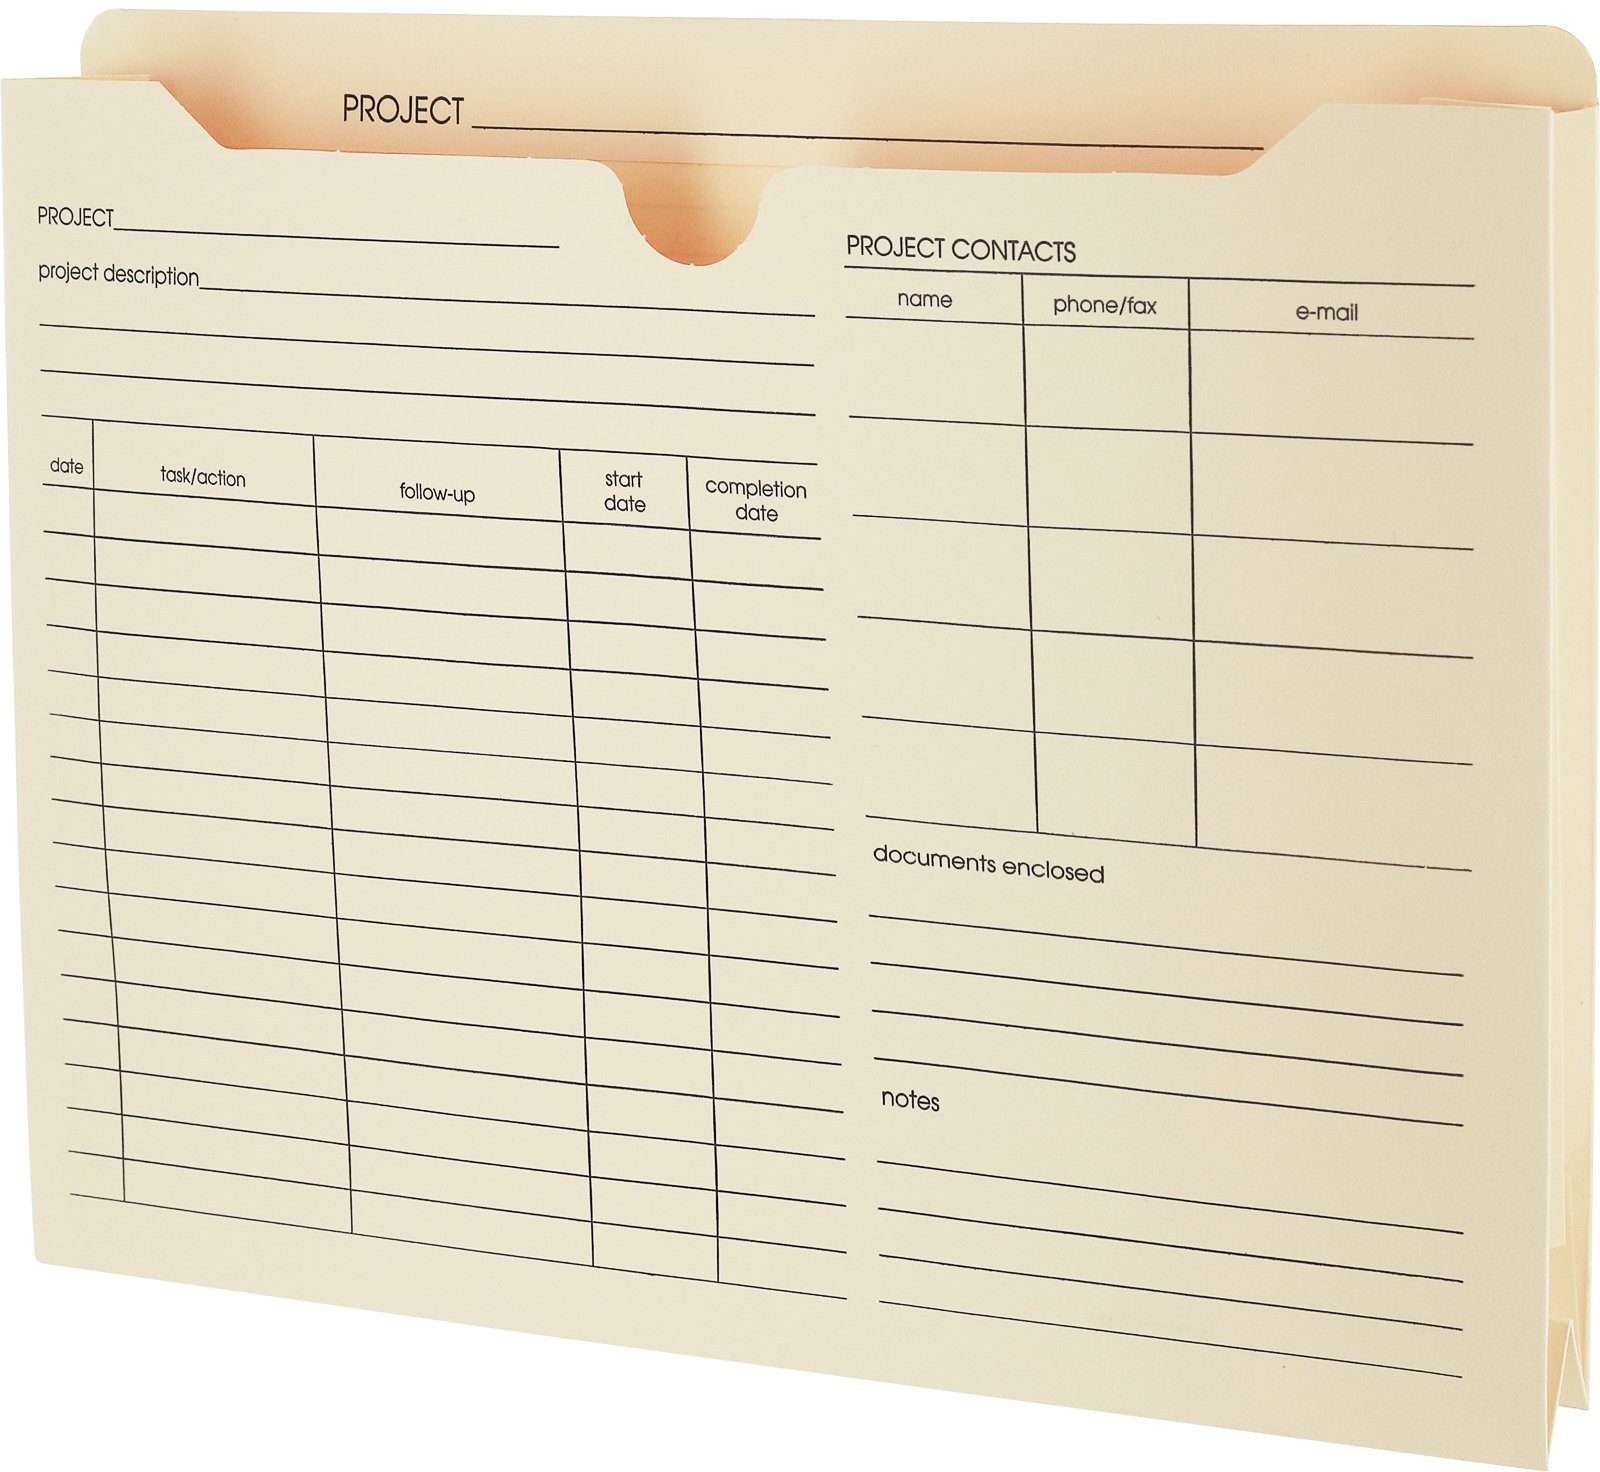 """Pendaflex File Folder Jackets, Letter Size, Manila, Preprinted, Expands 2"""" inches, Reinforced Tabs, 9.5"""" x 11.5"""" inches – Pack of 50 (27985)"""